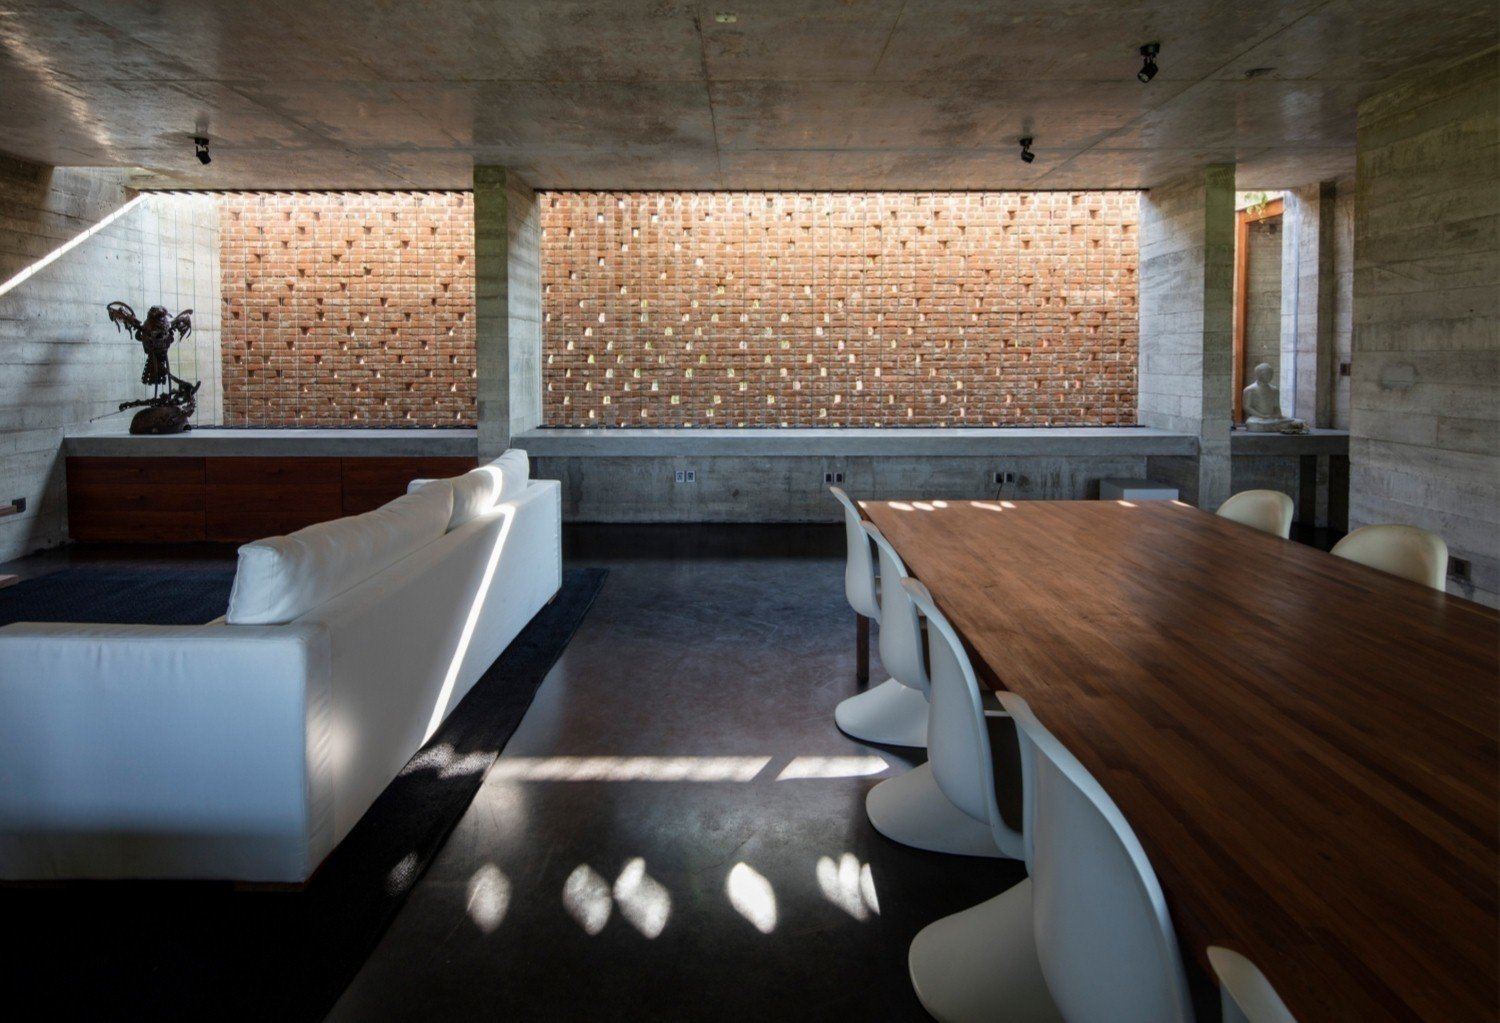 The perforated brick walls aid with heat management. Tagged: Dining Room, Chair, Table, and Concrete Floor. An Architect's Home and Studio Rises Above Rajagiriya - Photo 4 of 7